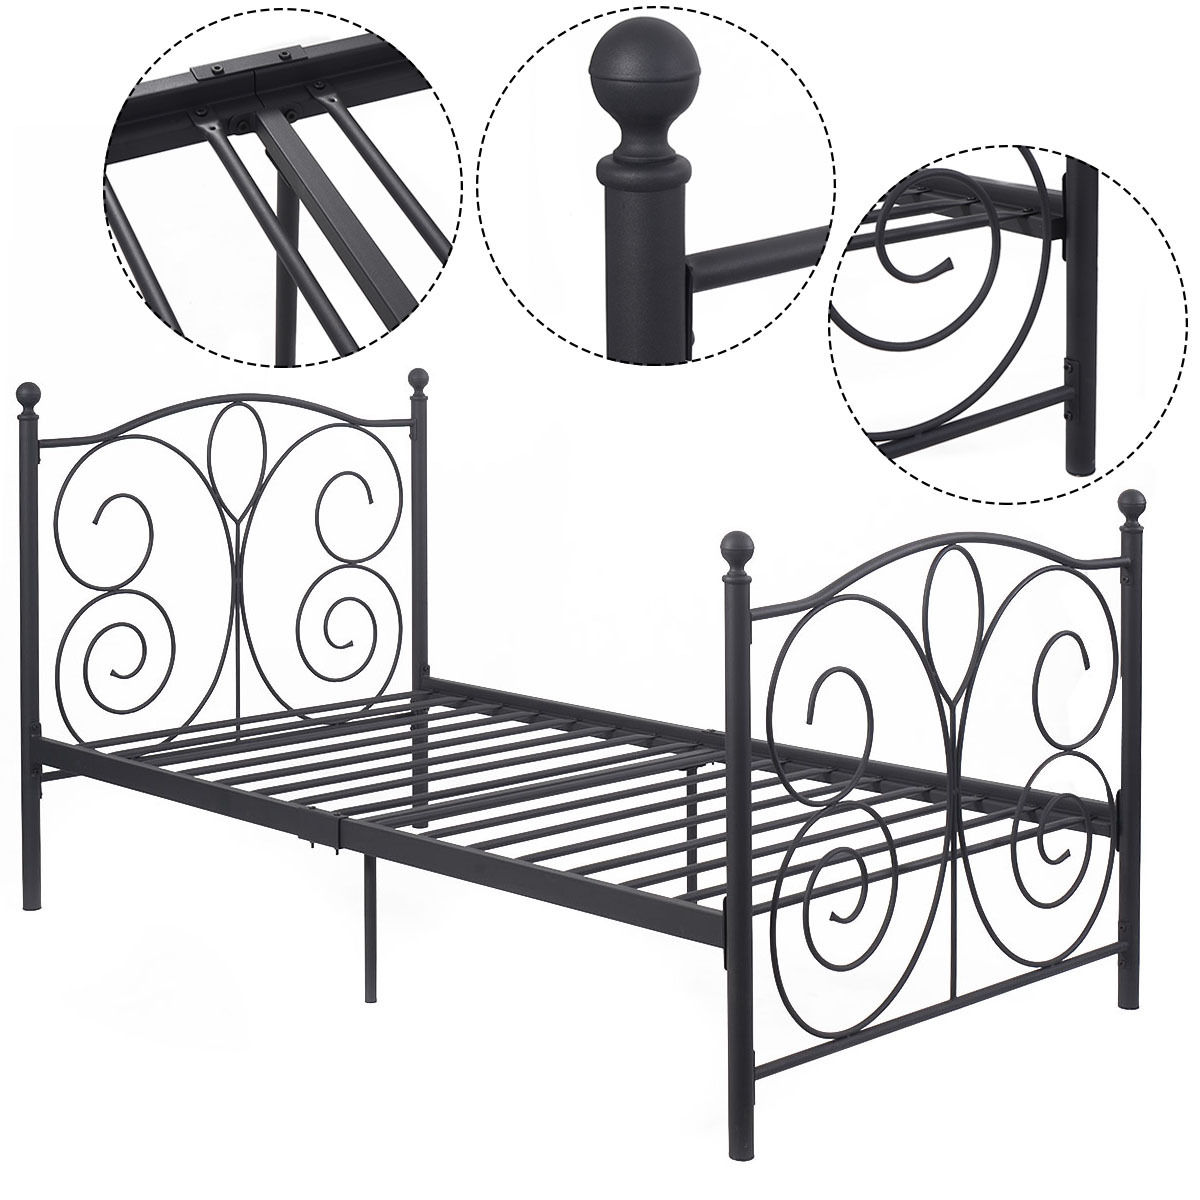 Costway Black Steel Twin Size Bed Frame Platform Foundation Furniture (83''x43''x42'') by Costway